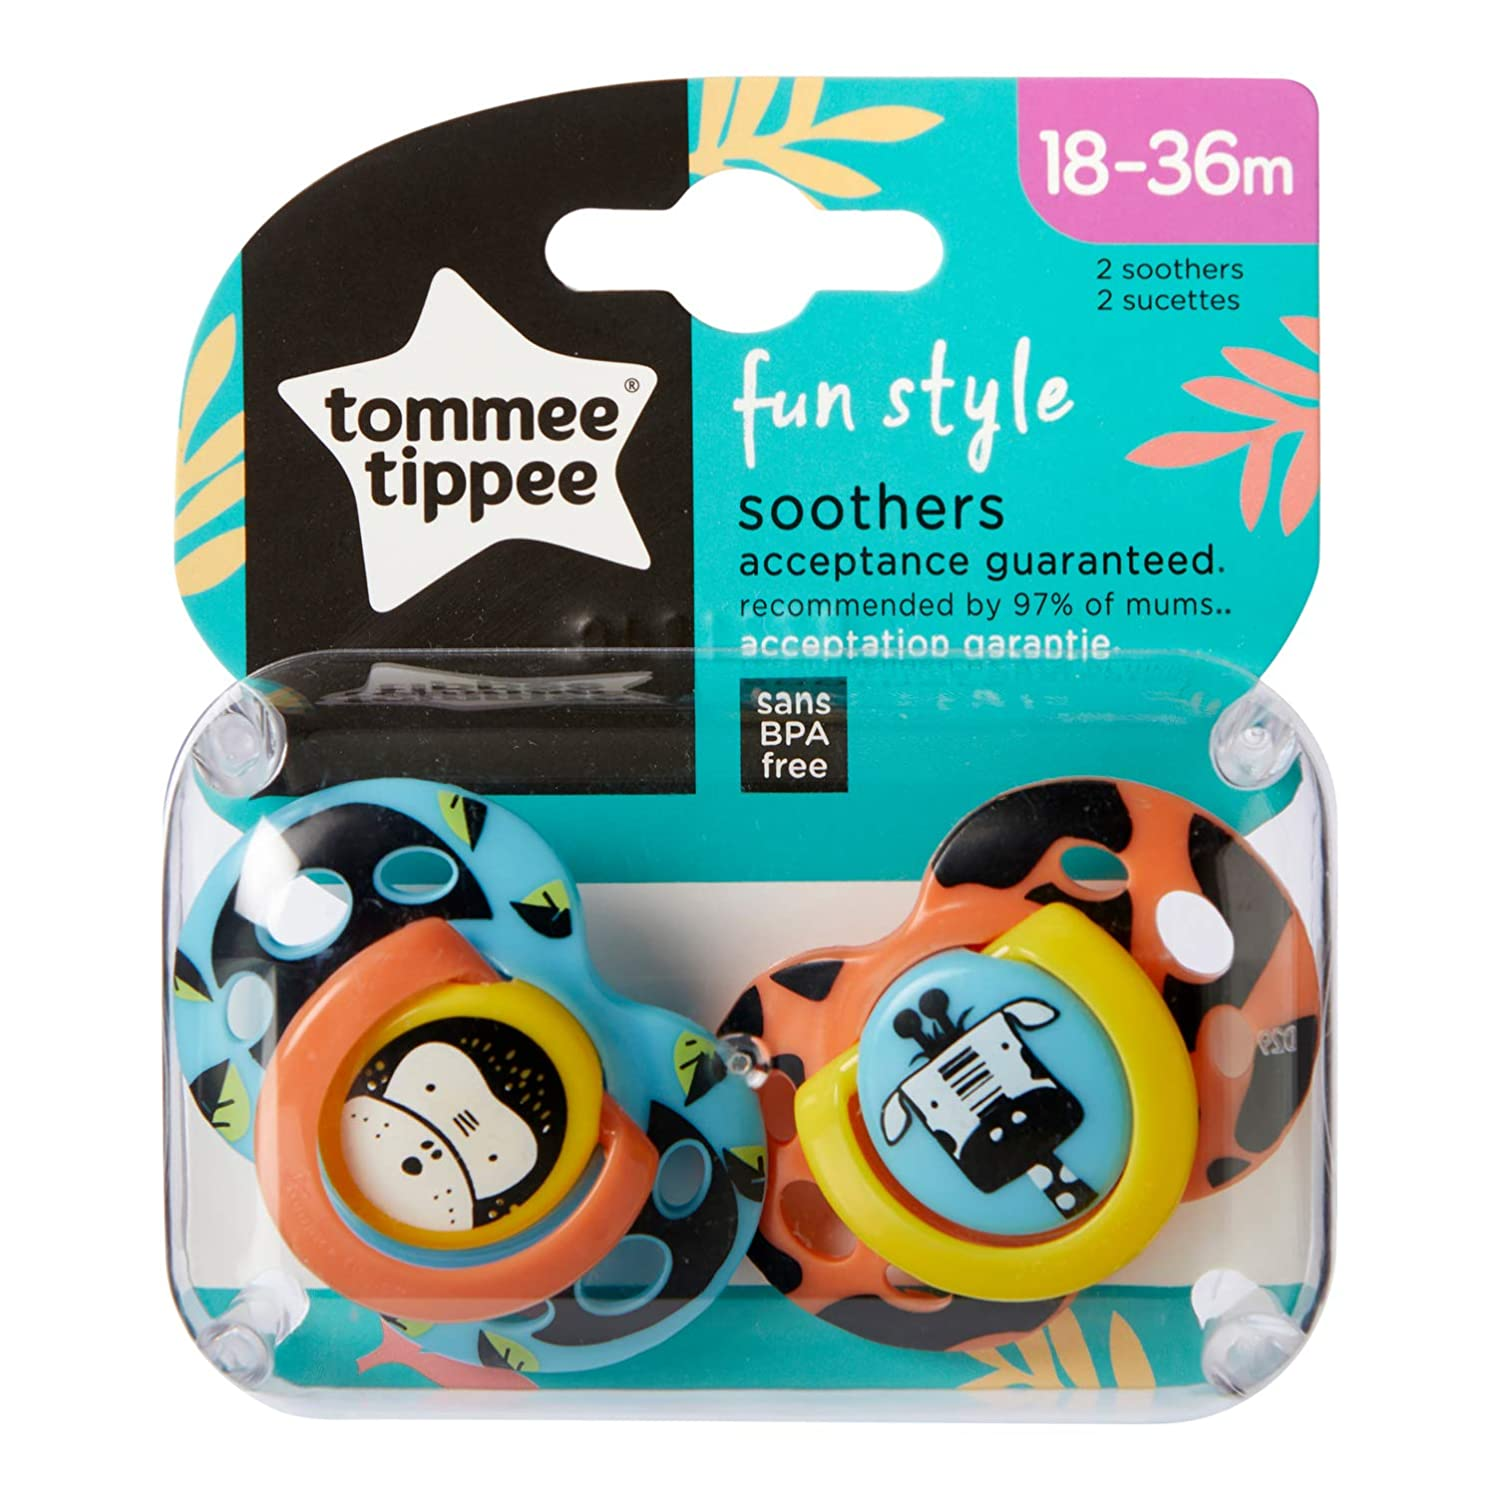 Tommee Tippee Closer to Nature - Chupetes, 2 unidades, diseño Fun, para 18-36 meses, color azul